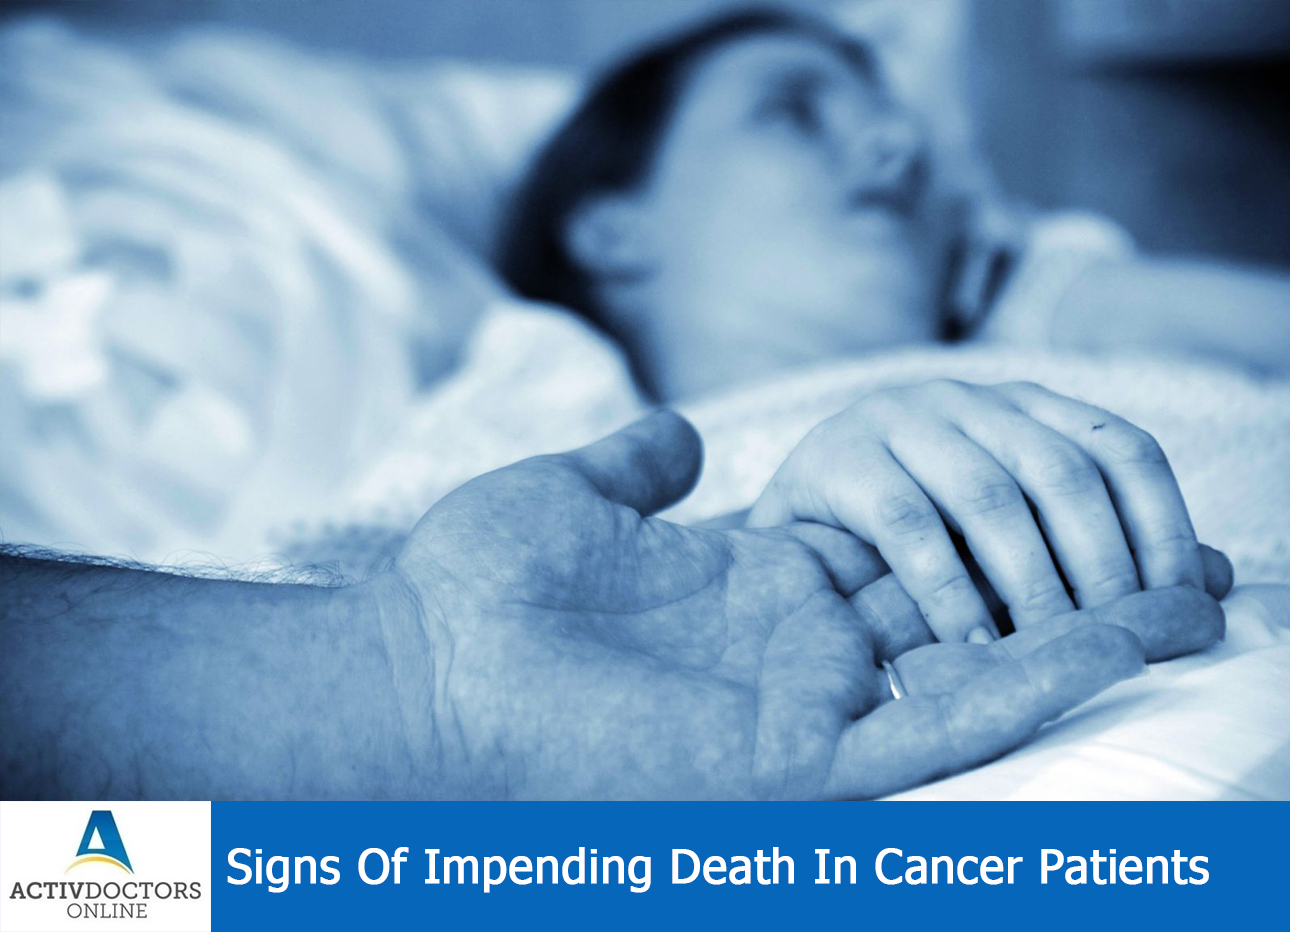 Signs Of Impending Death In Cancer Patients